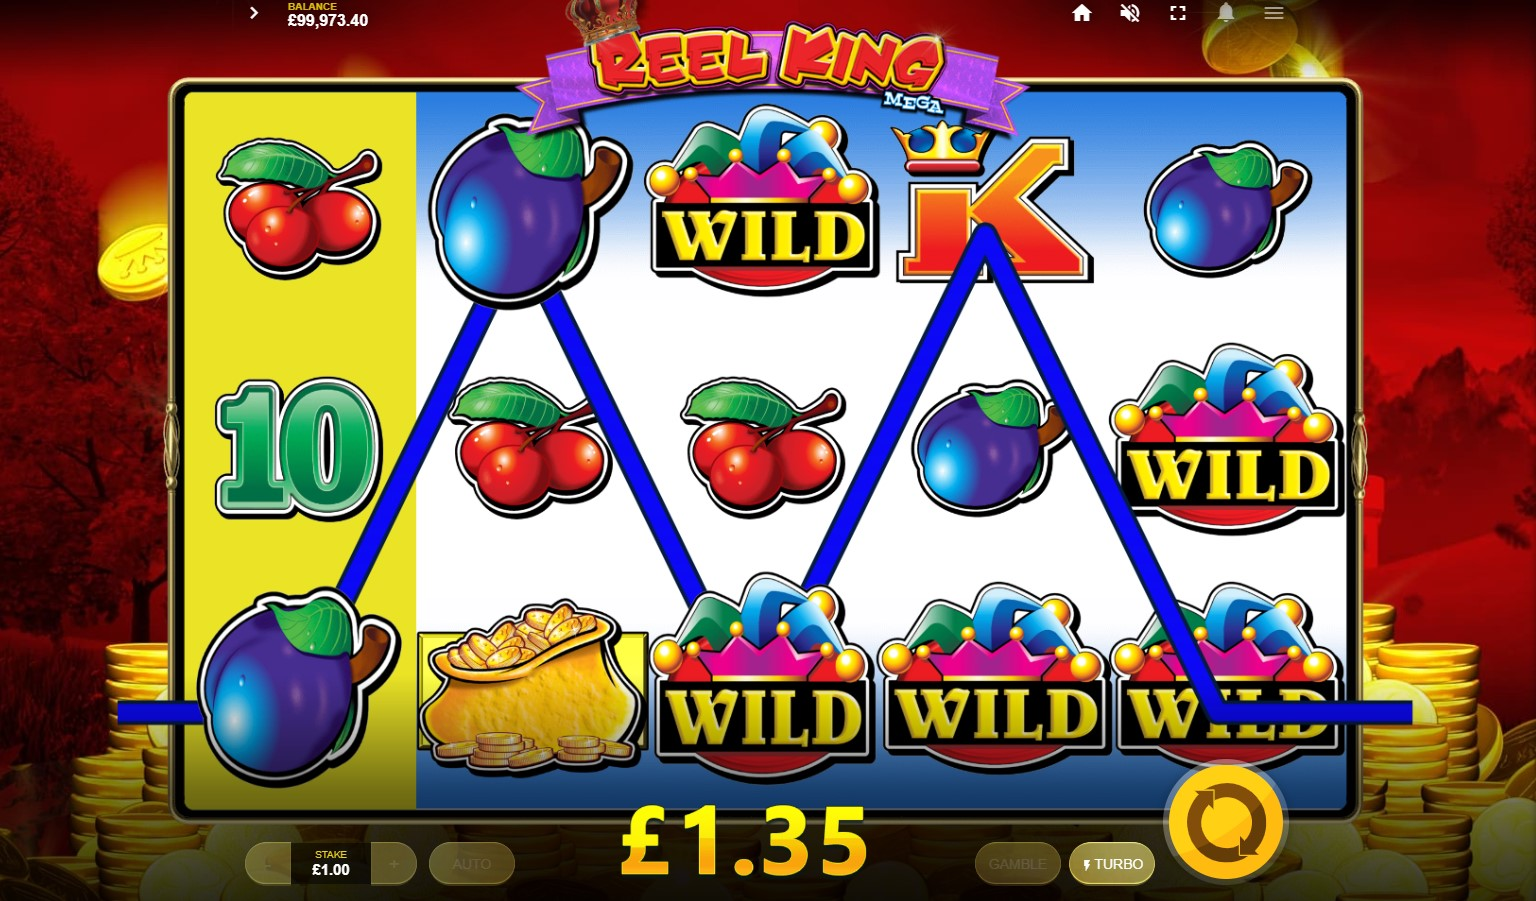 Wild symbol win during Reel King Mega online slot game